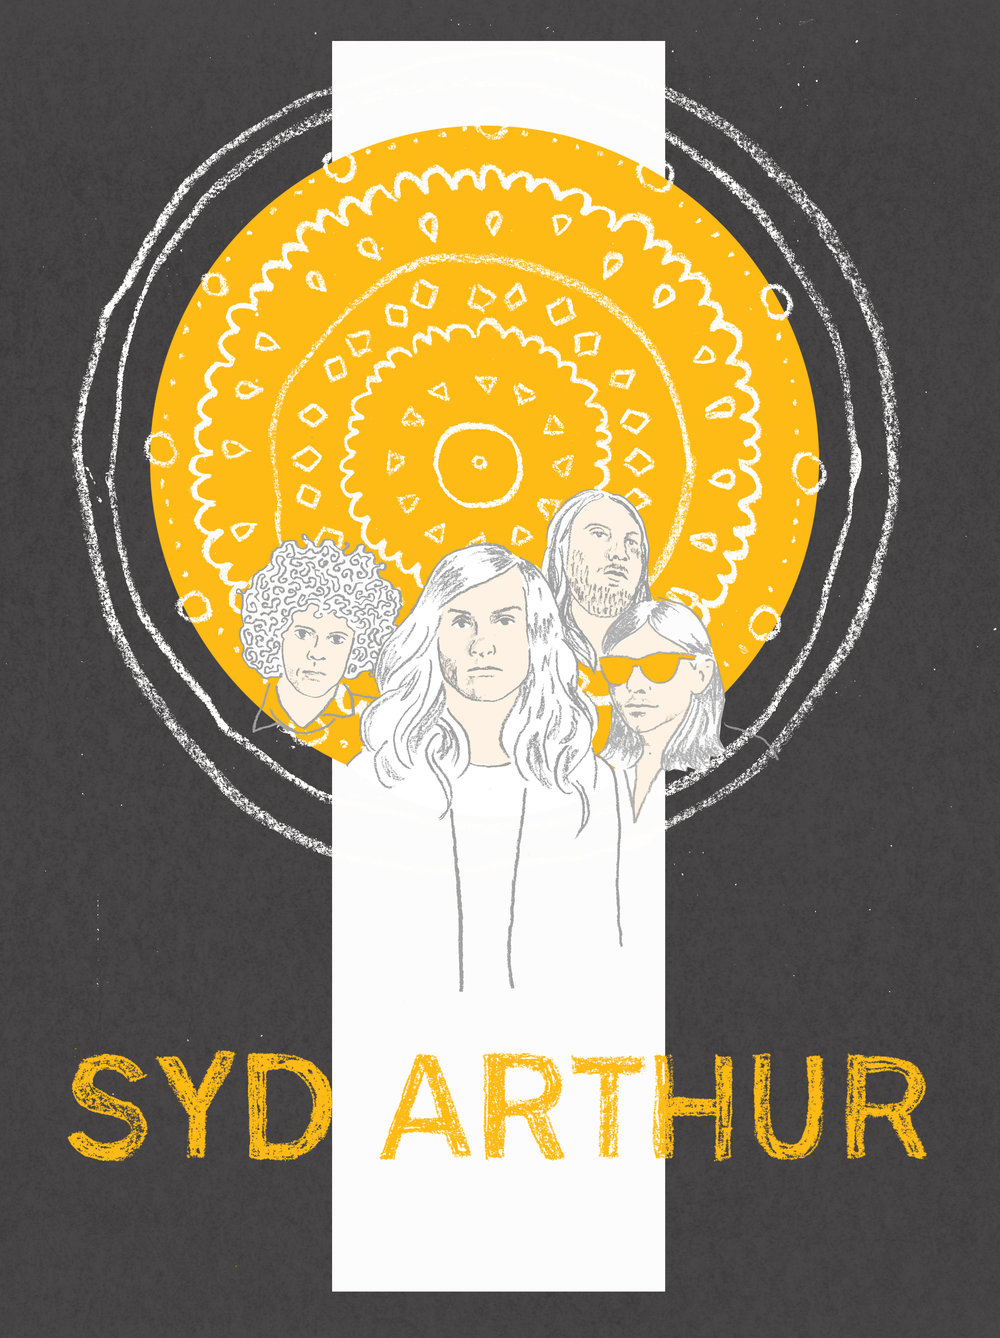 syd_ARTHUR_website.jpg